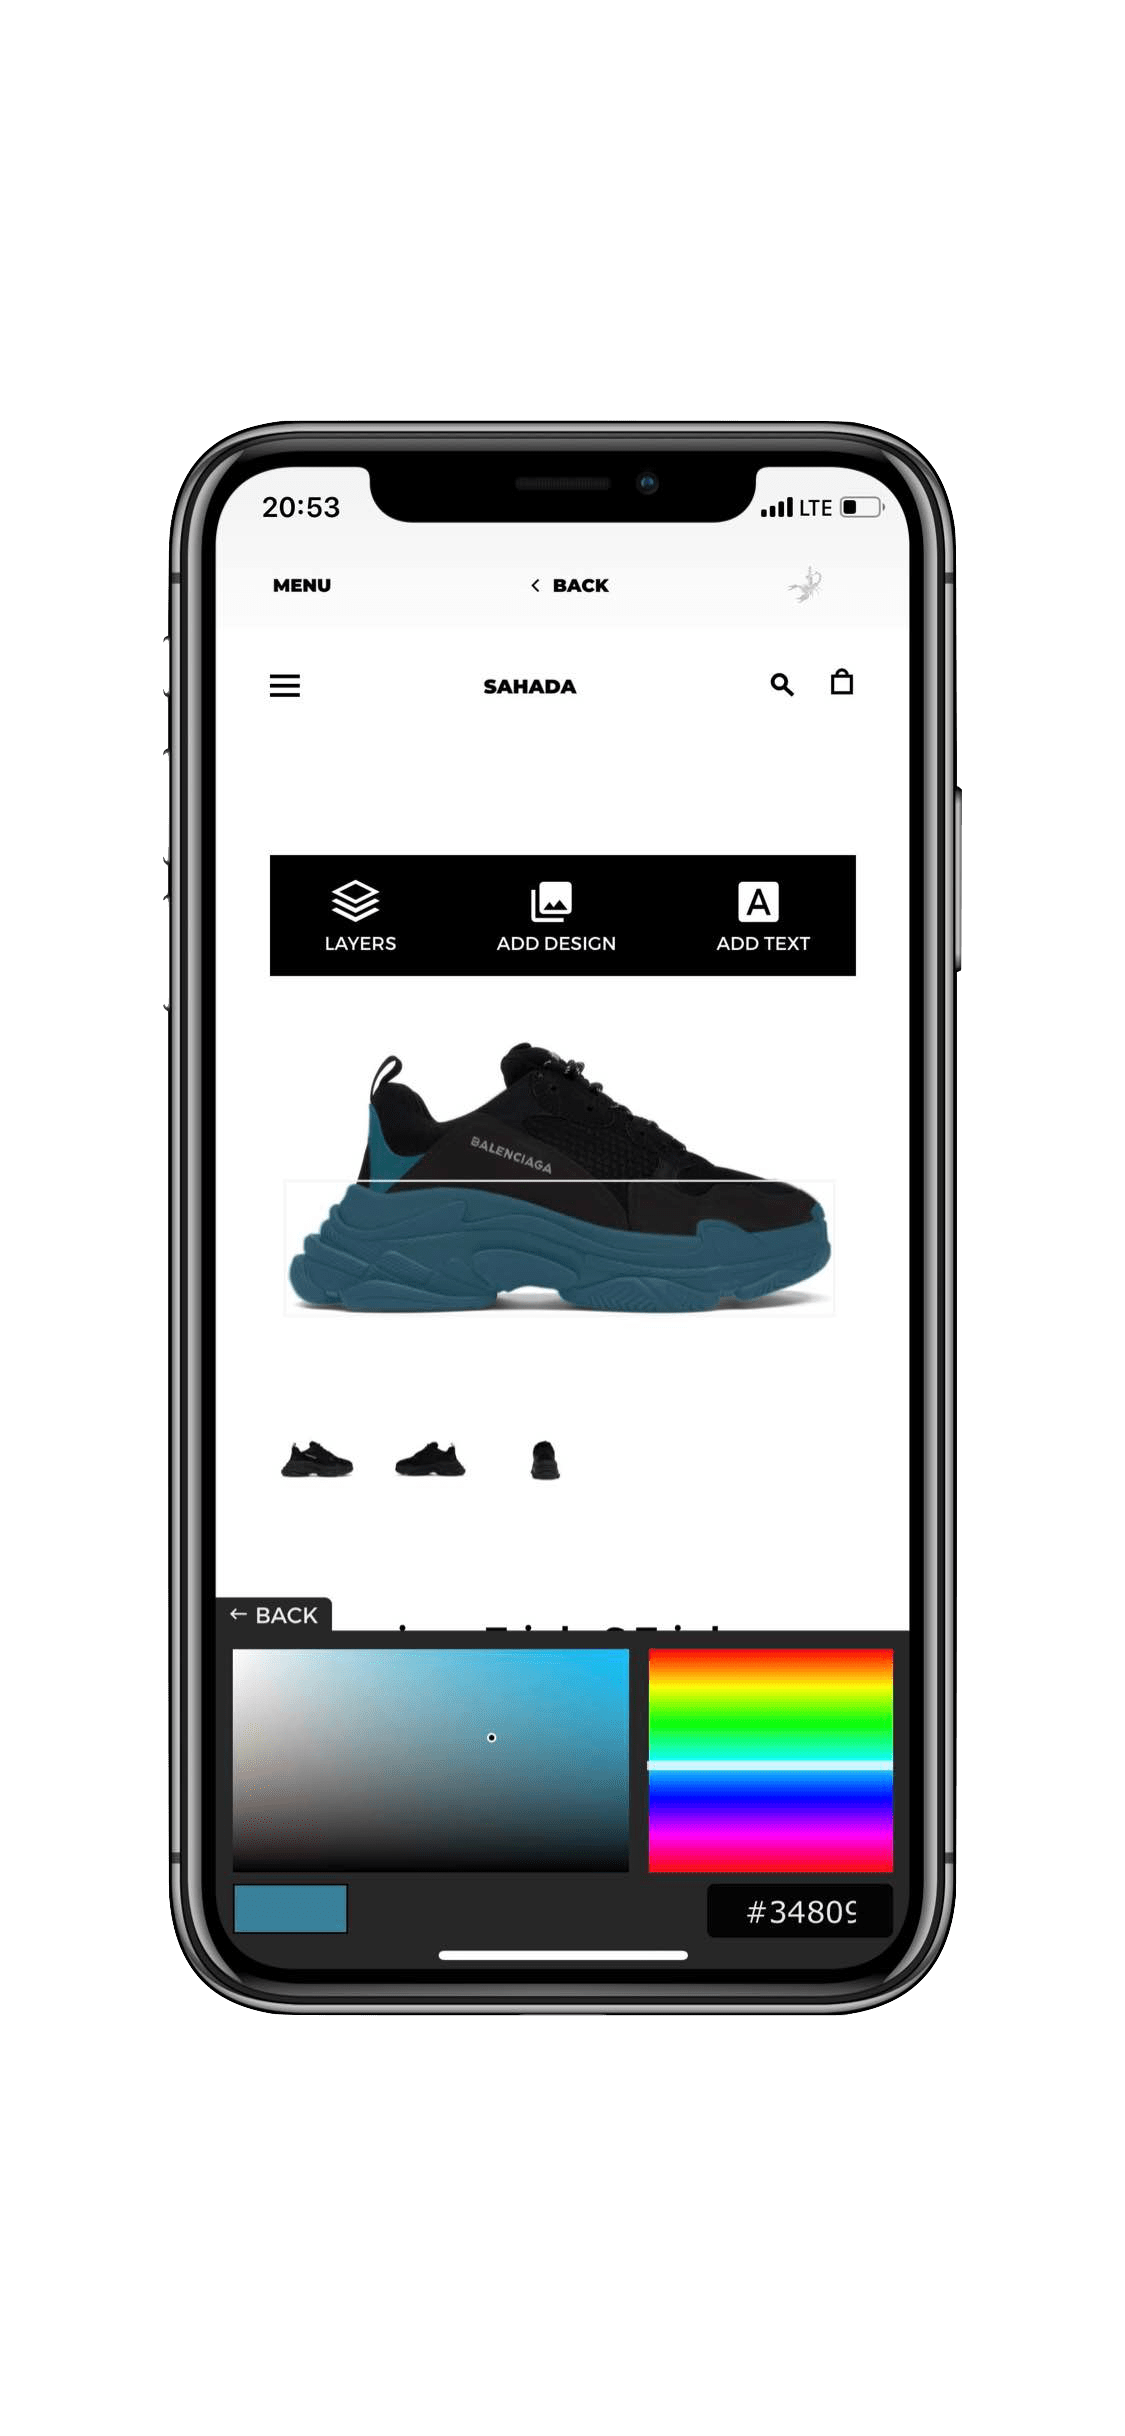 Application Development for Sahada Sneakers